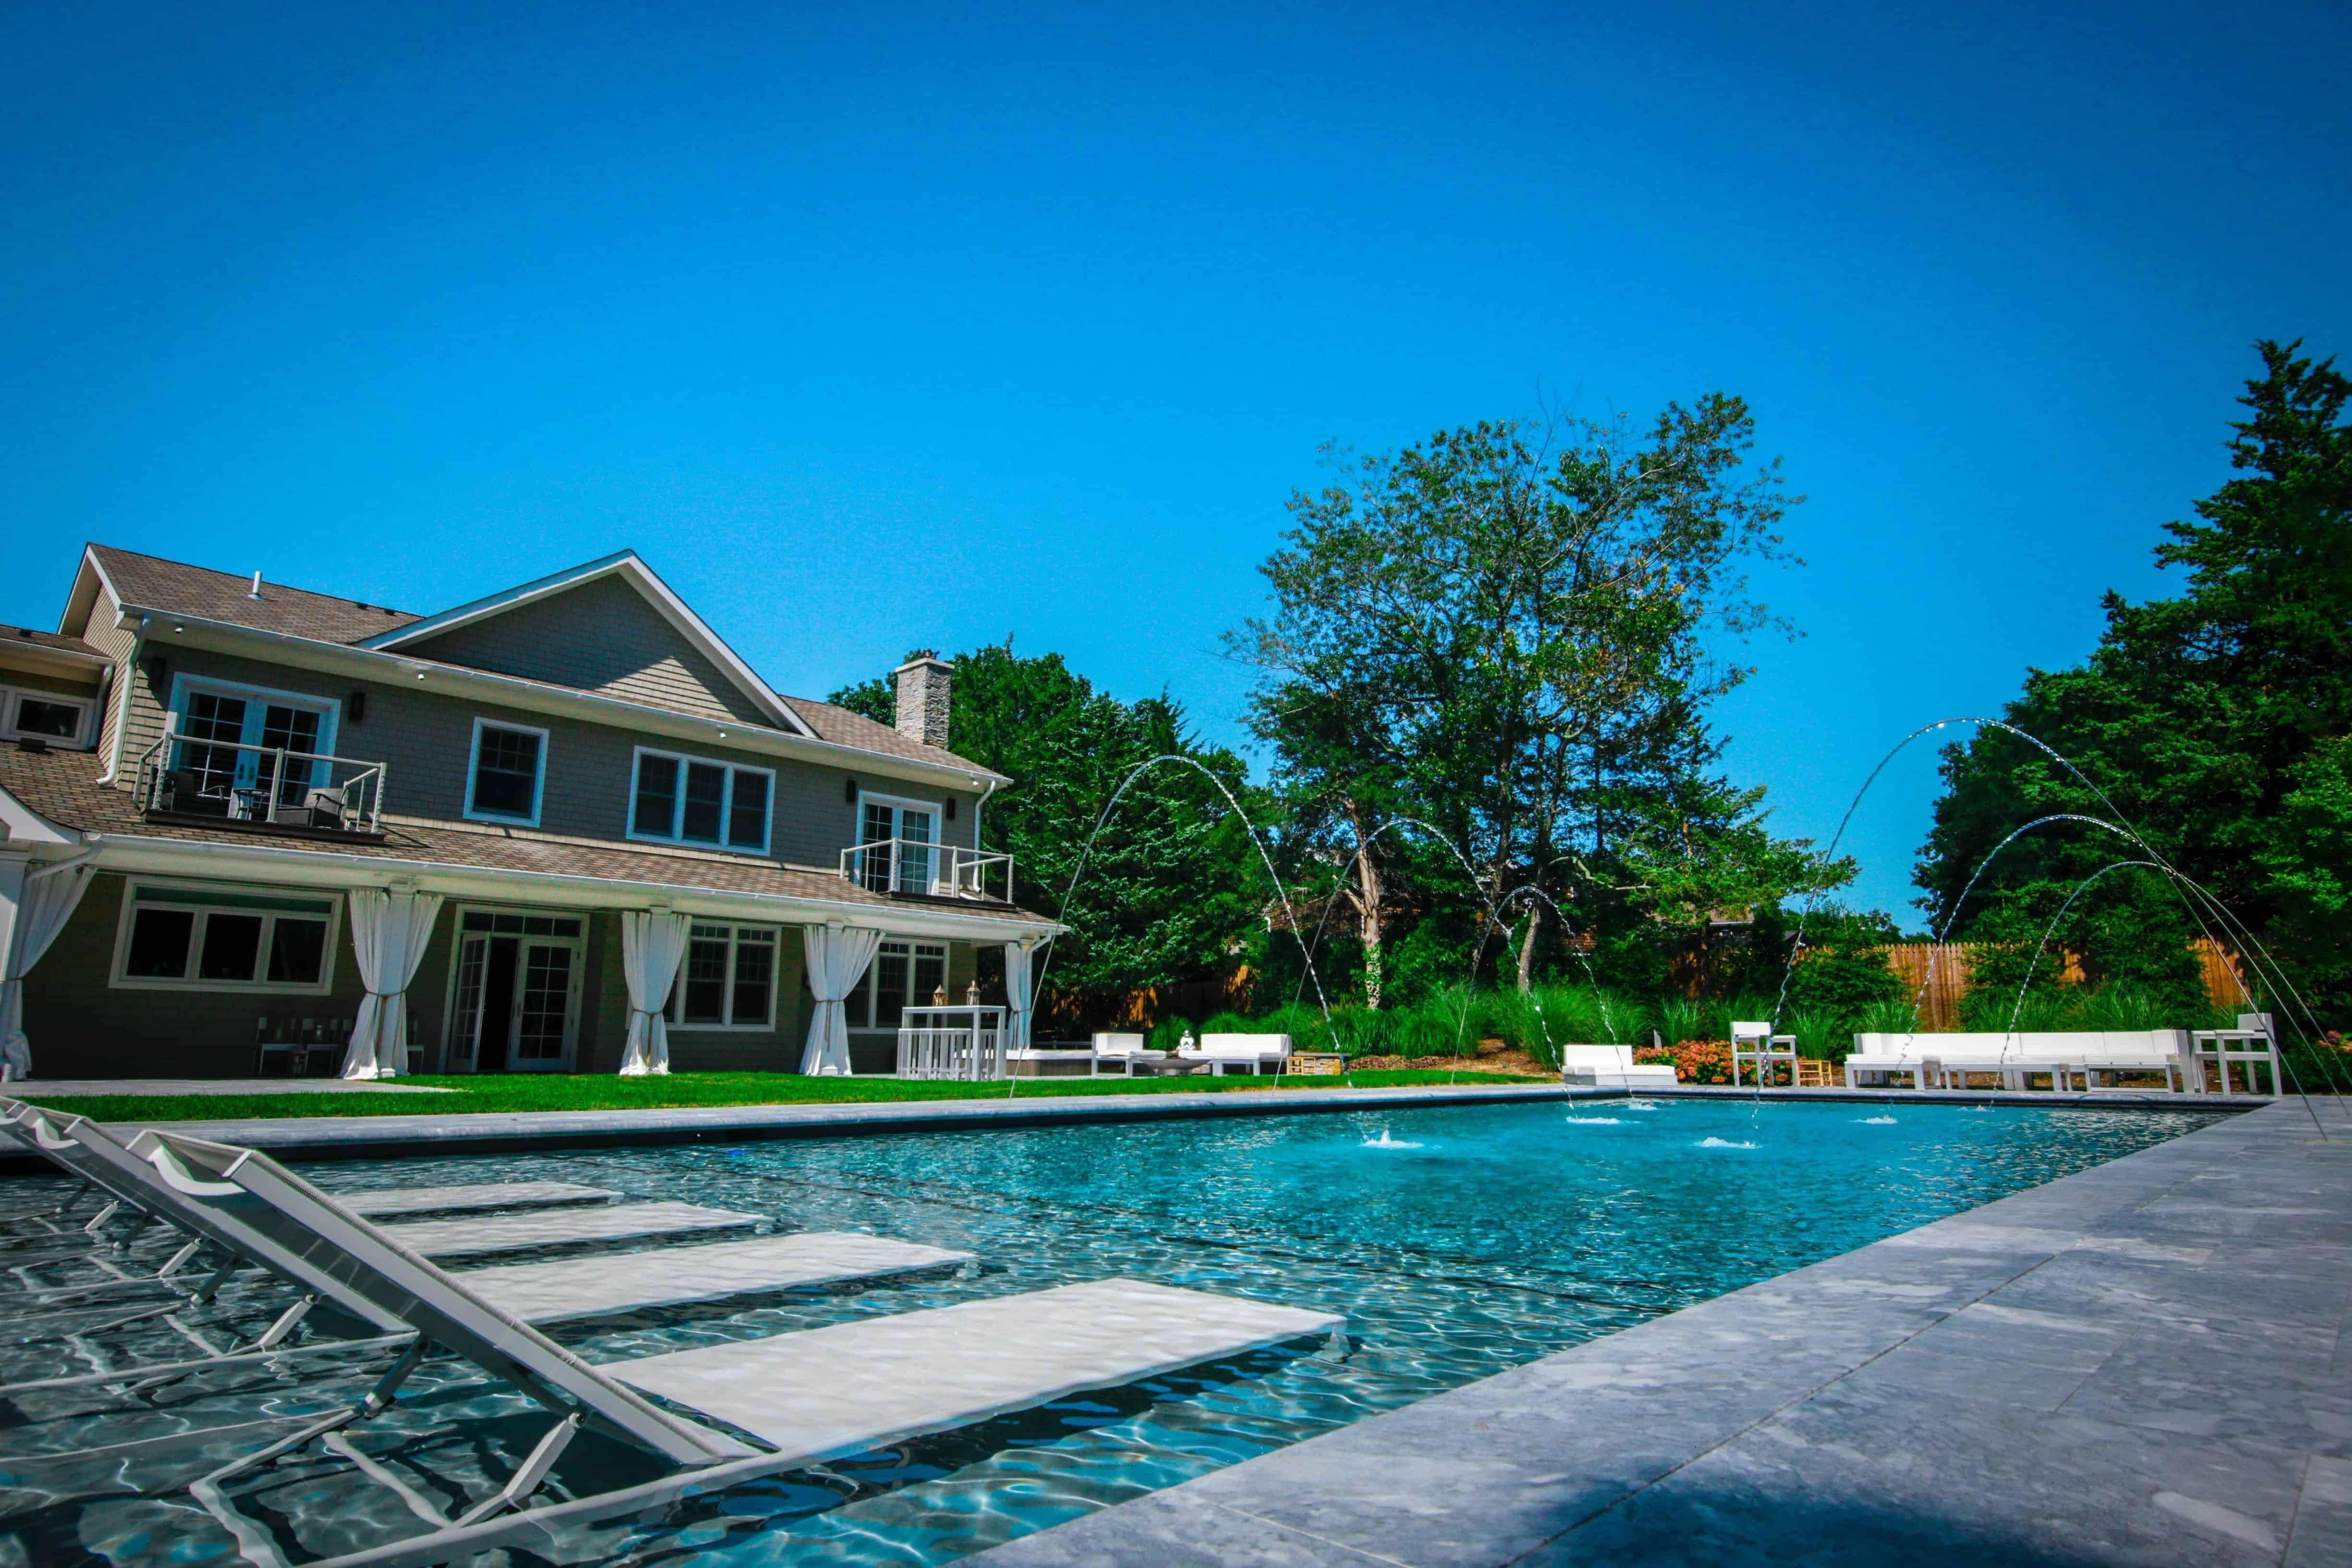 20' x 50' Gunite Pool with Sun Deck and Jandy Laminar Jets in Sag Harbor, Long Island NY